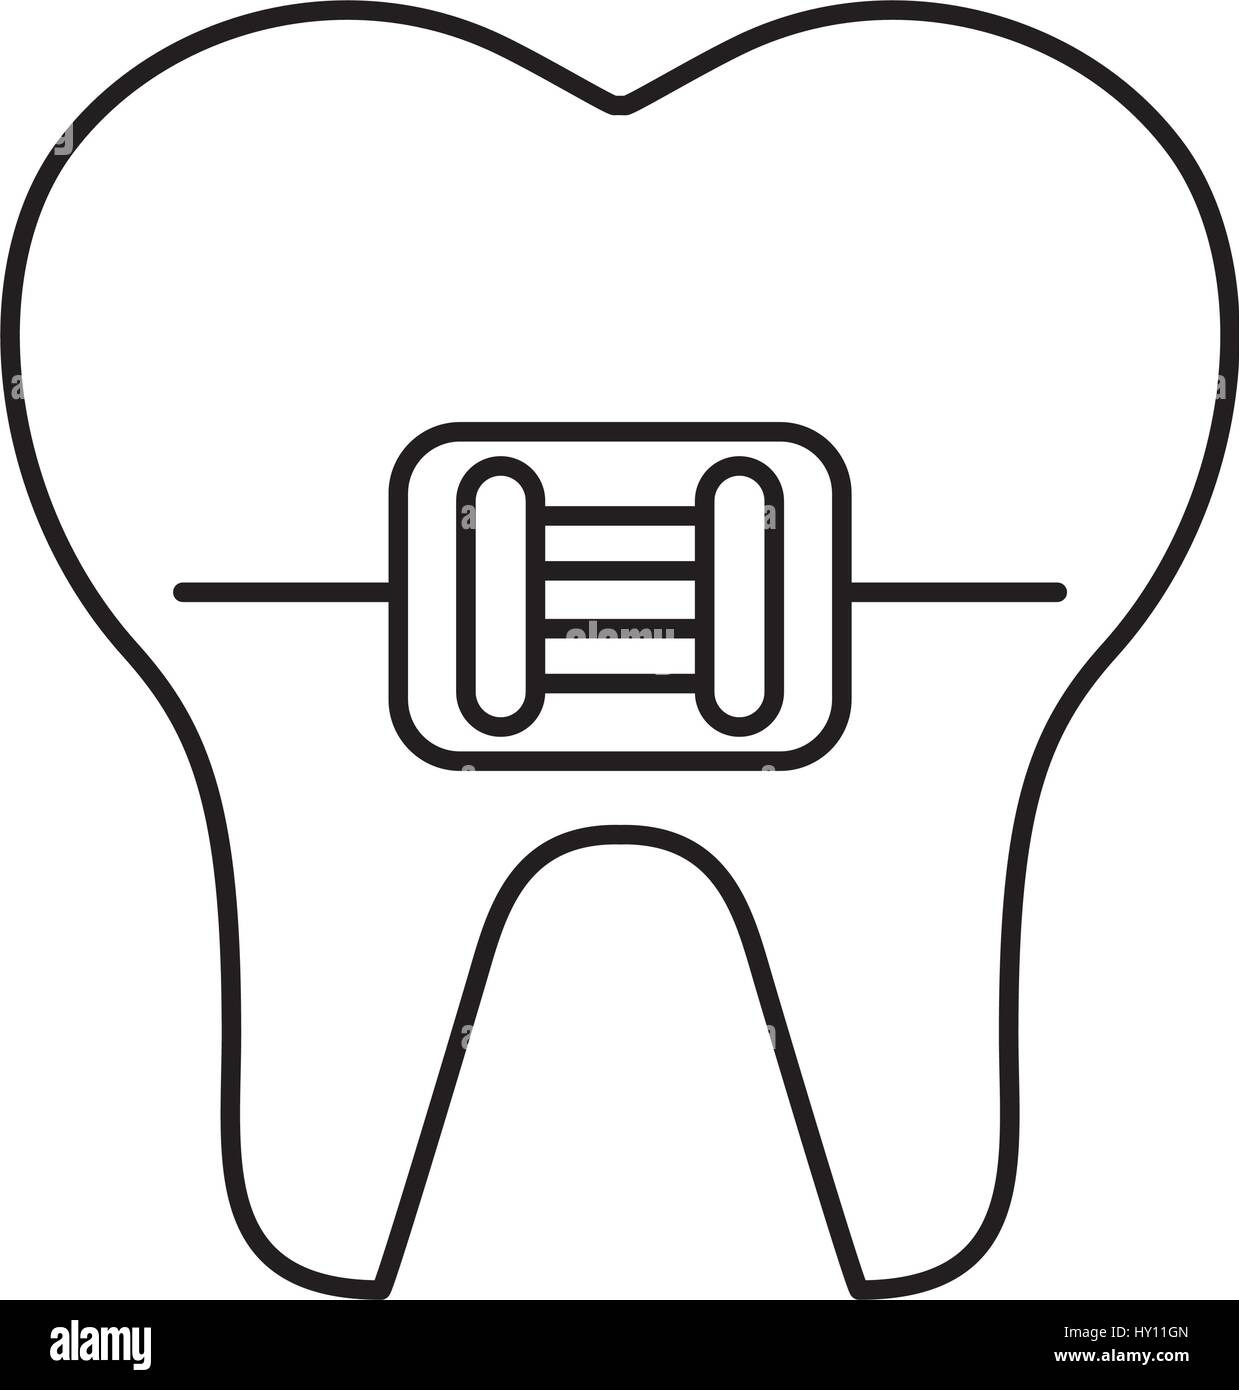 tooth with orthodontic bracket isolated icon stock vector art